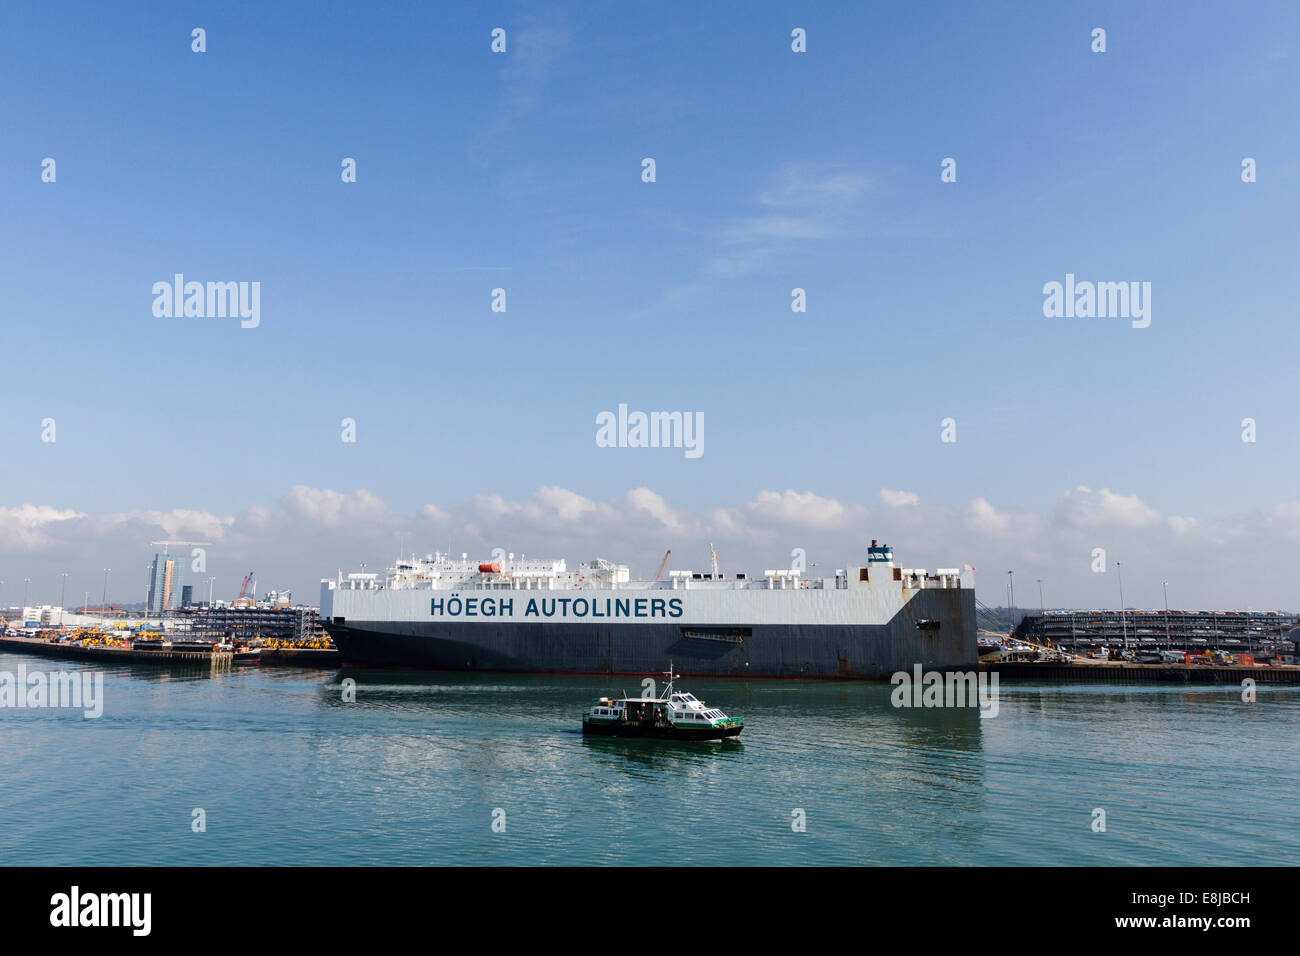 Hoegh Autoliners, car carrier, shipping company, Southampton docks, England, UK - Stock Image